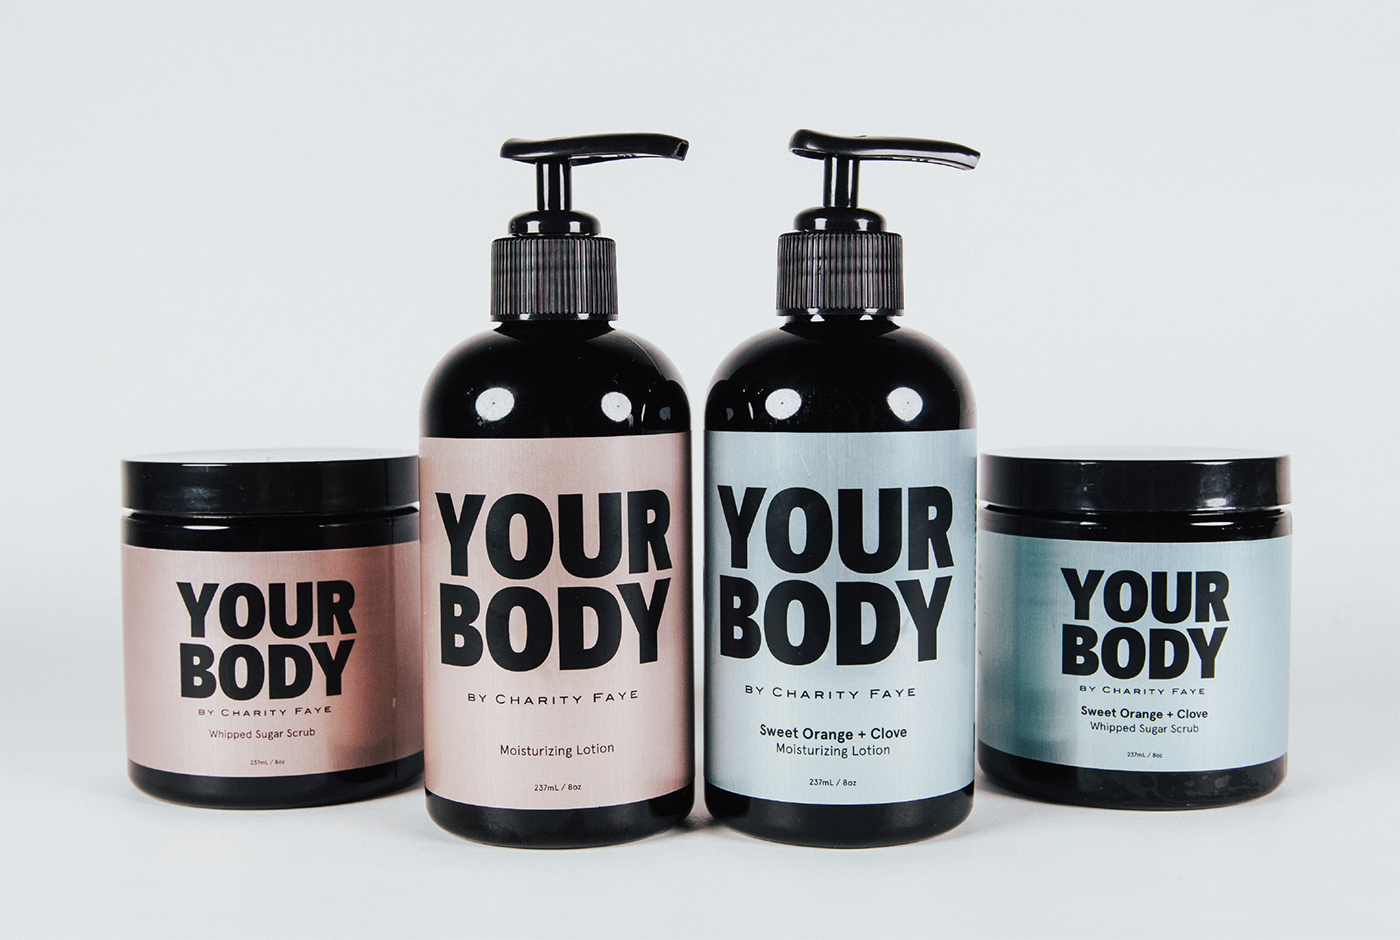 Charity Faye Spa Your Body line